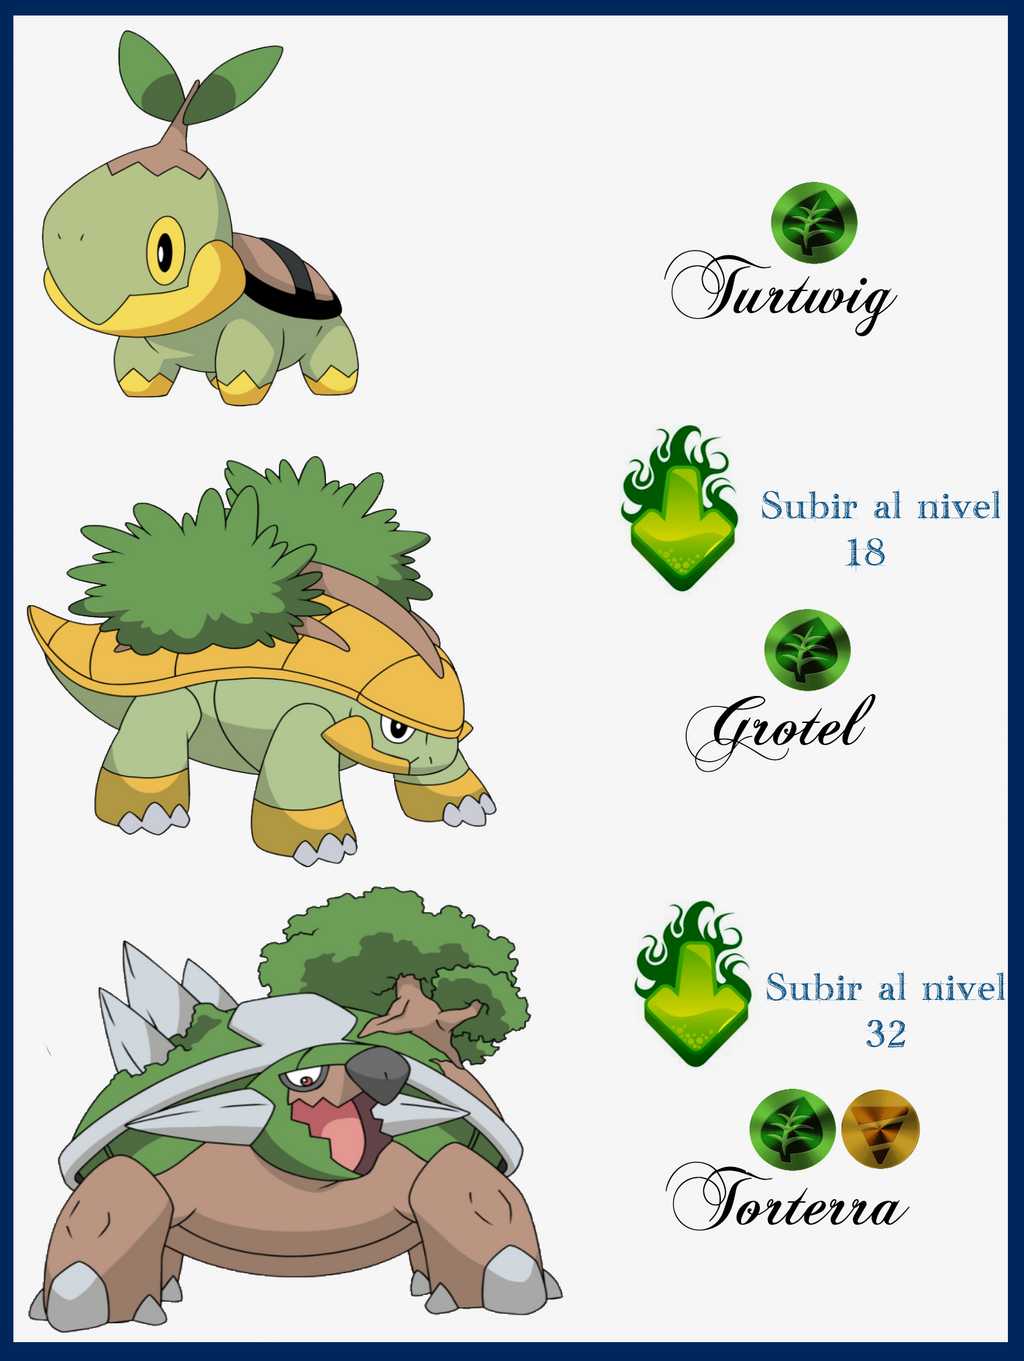 Pokemon Turtwig Evolution Chart Images | Pokemon Images